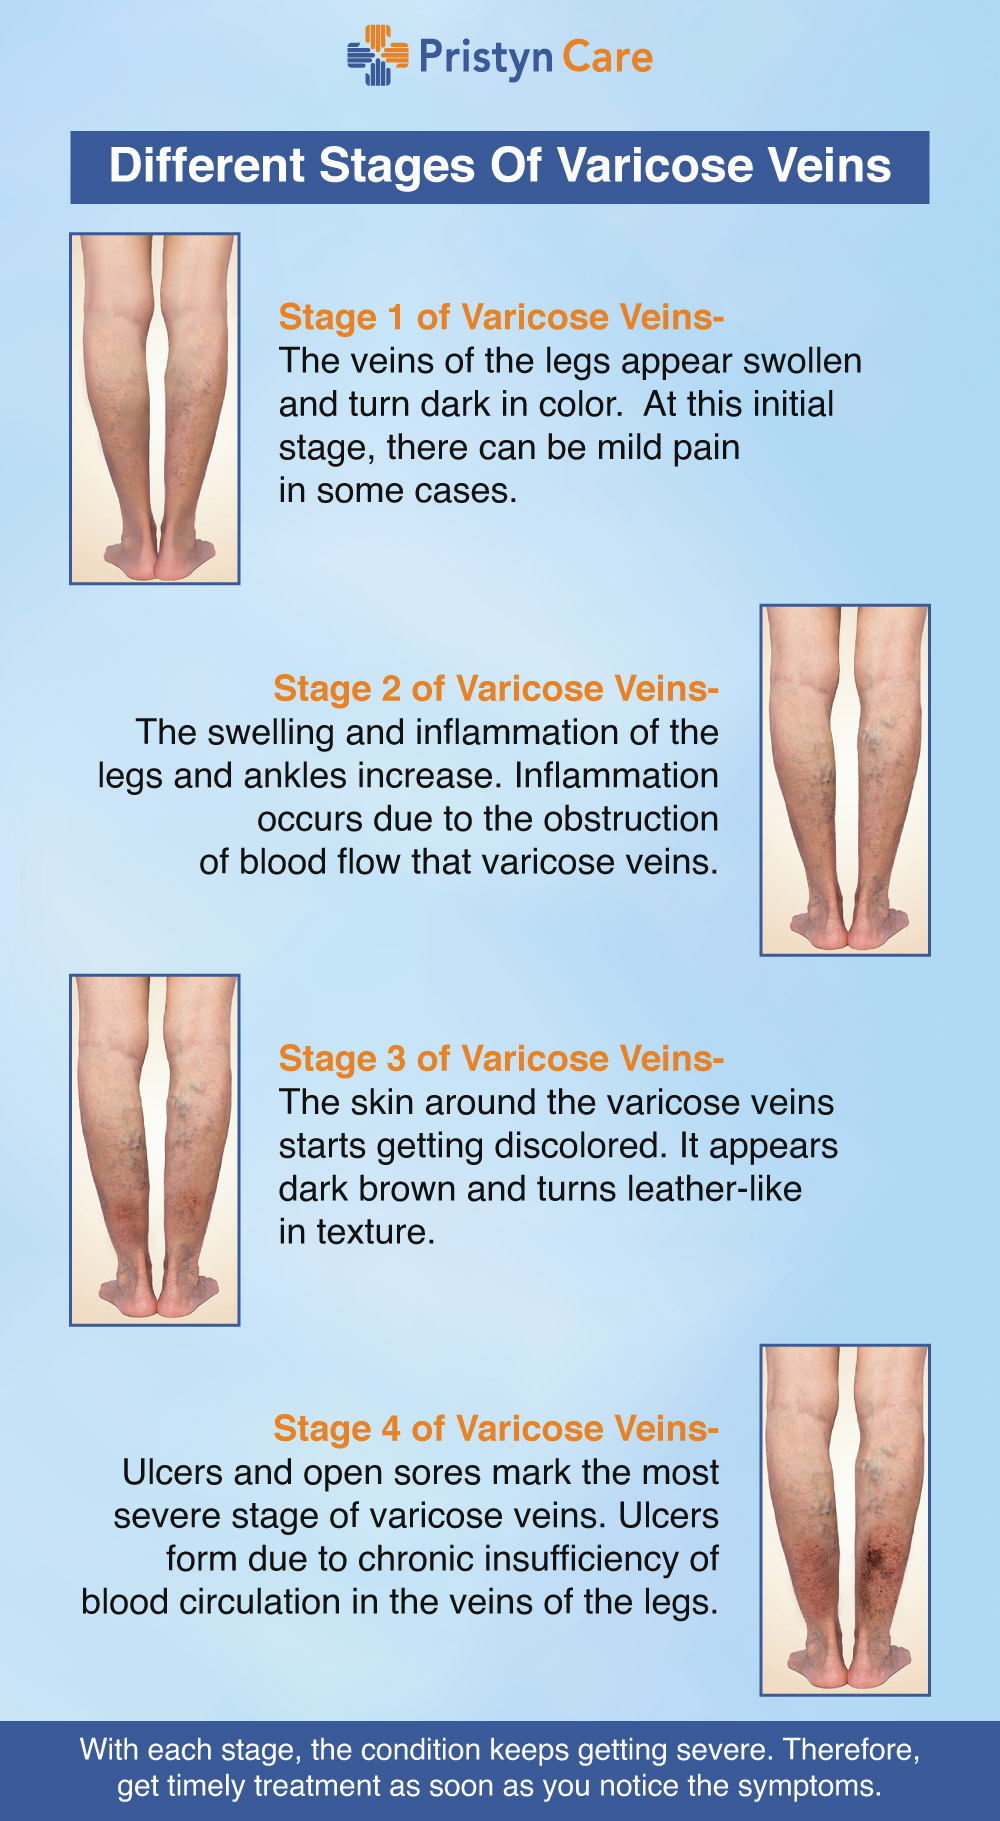 Different stages of varicose veins